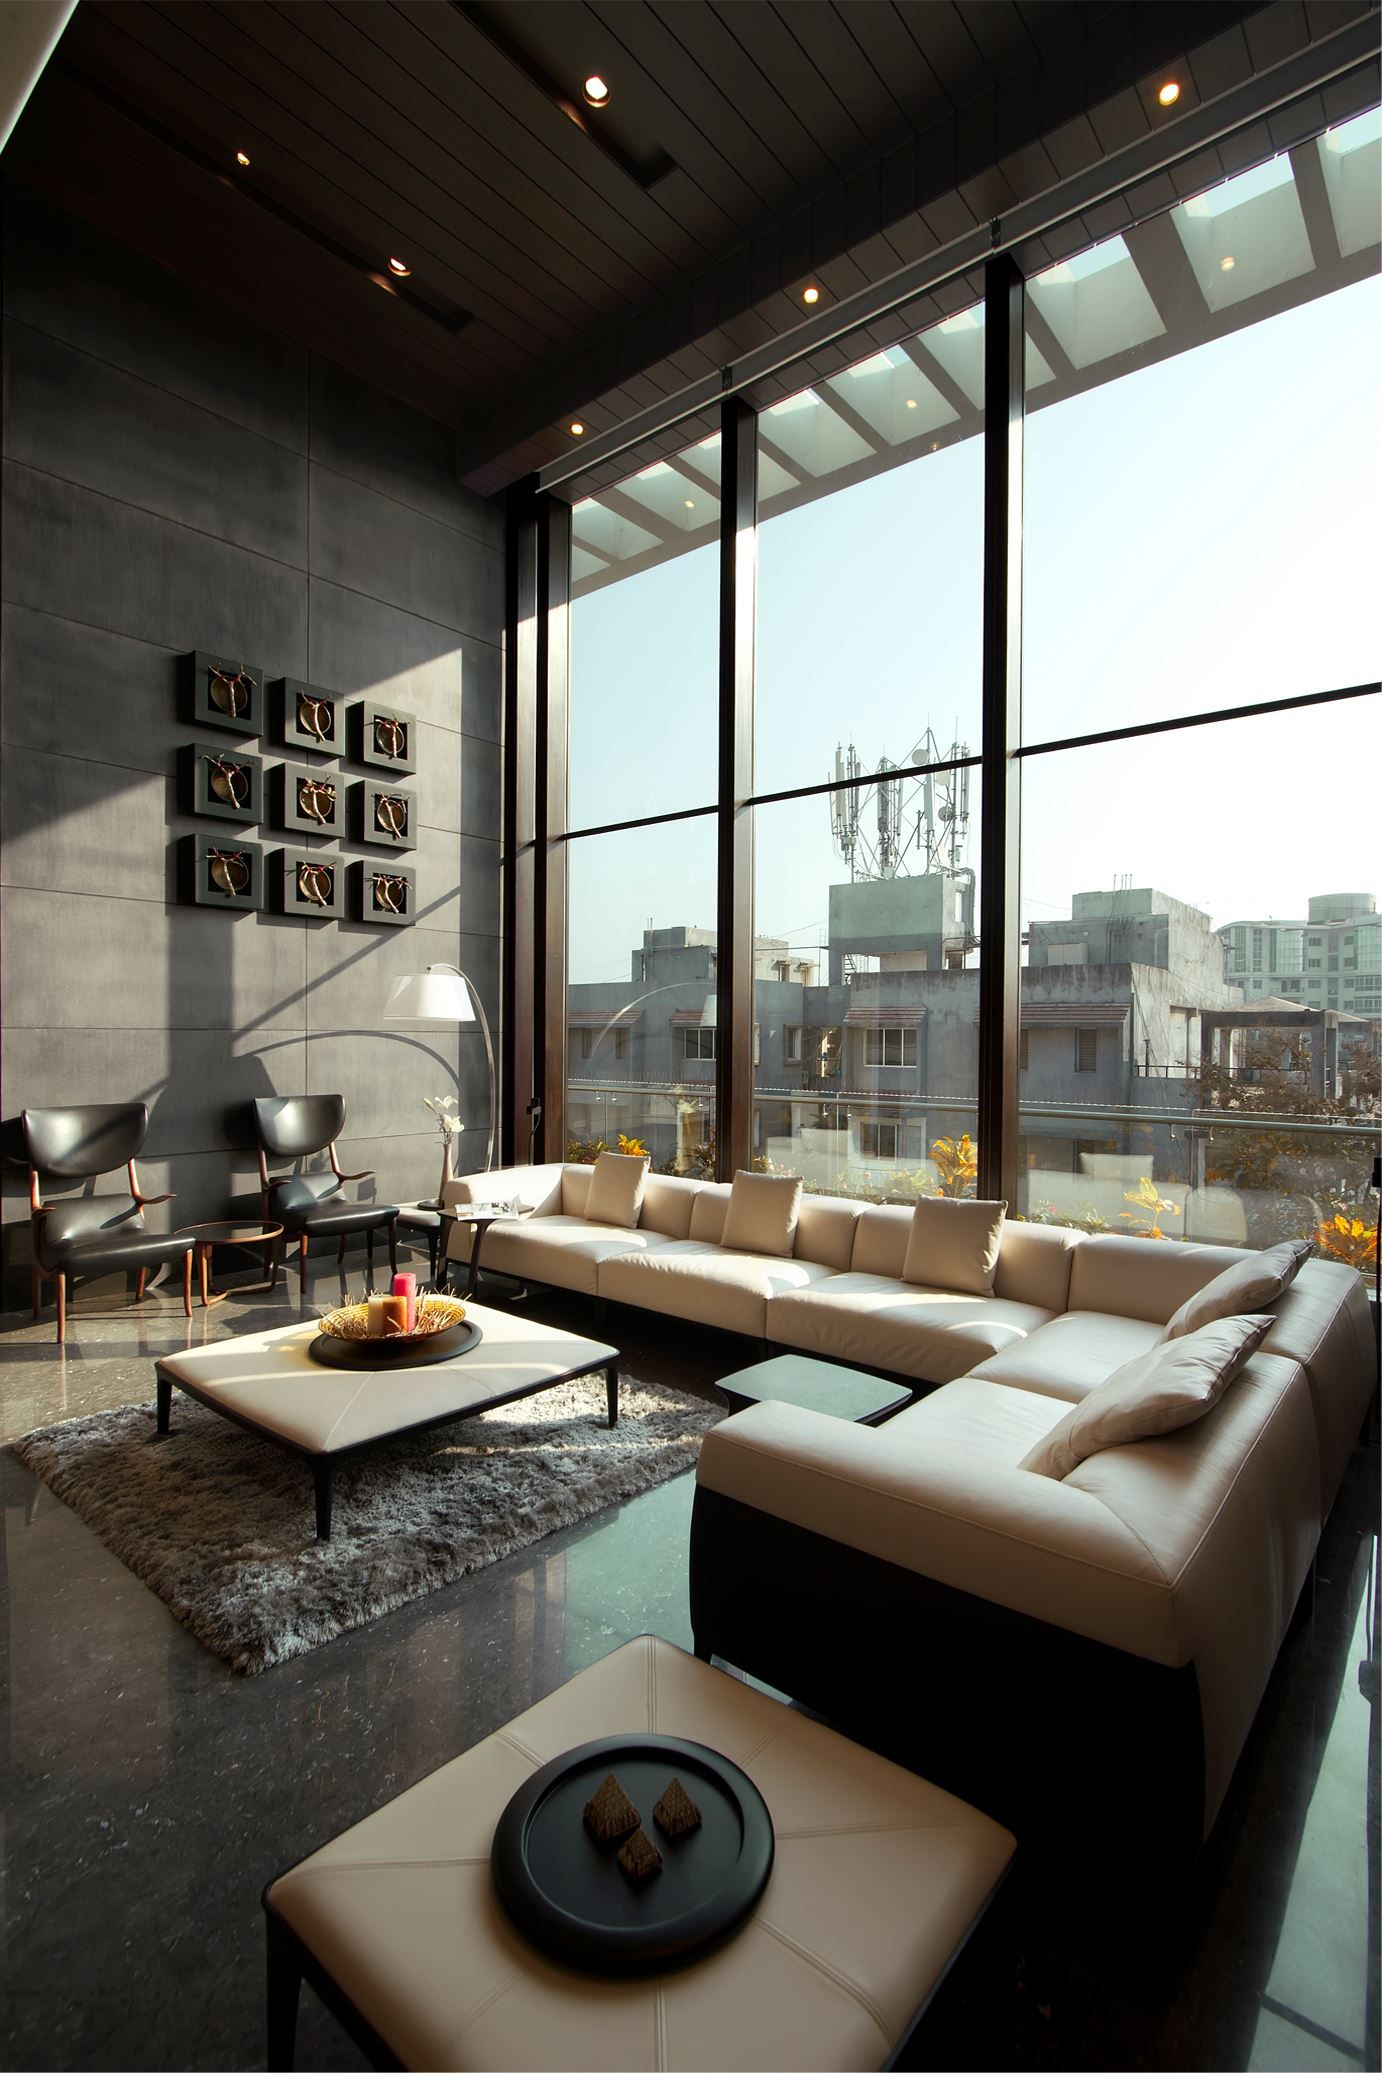 Designing Living Room Penthouse Interior Design  Penthouses Interior Design Living